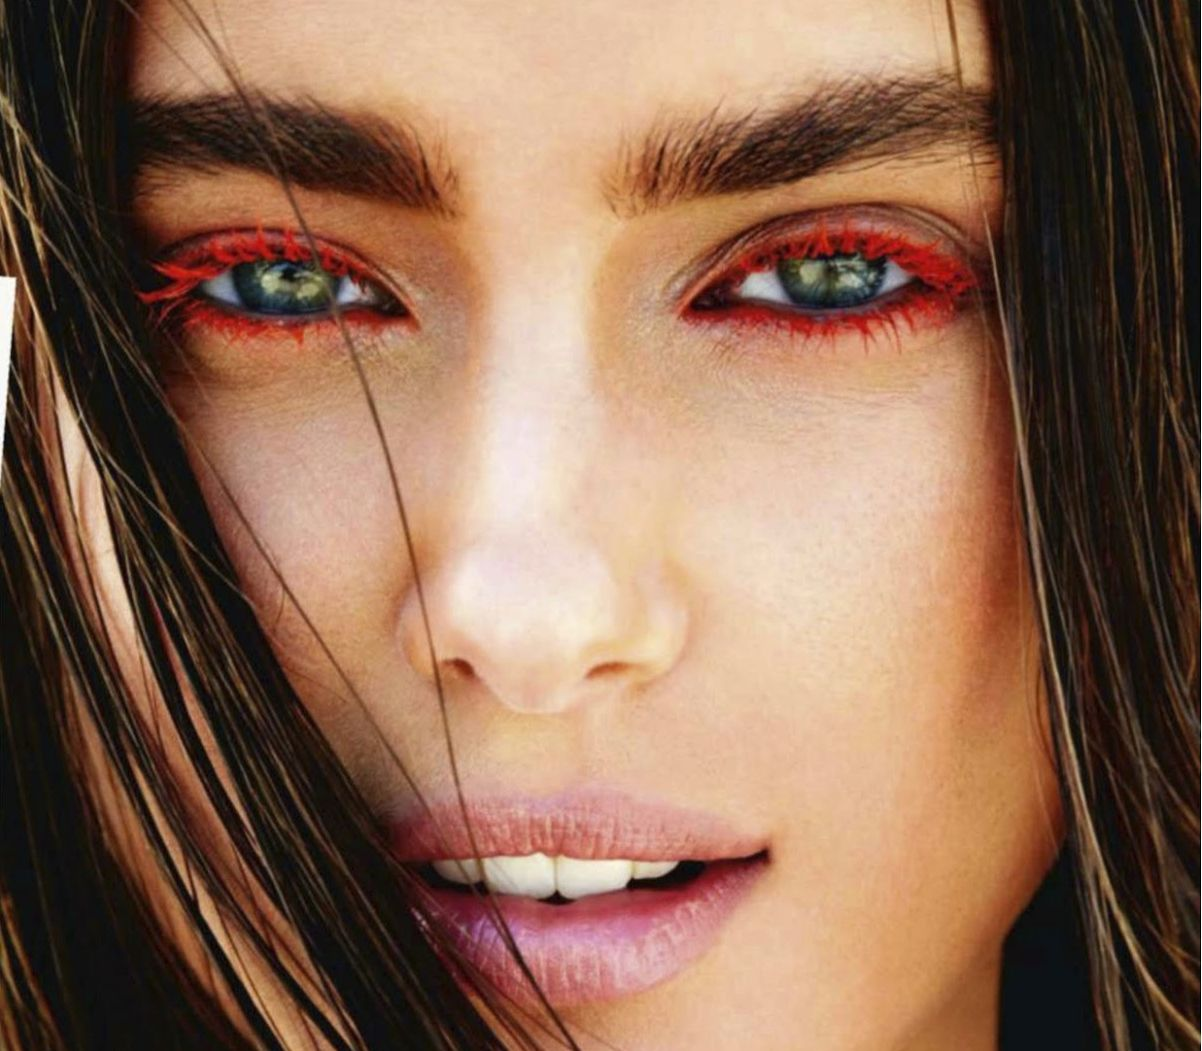 Colored eyebrows – a beauty trend for 2015